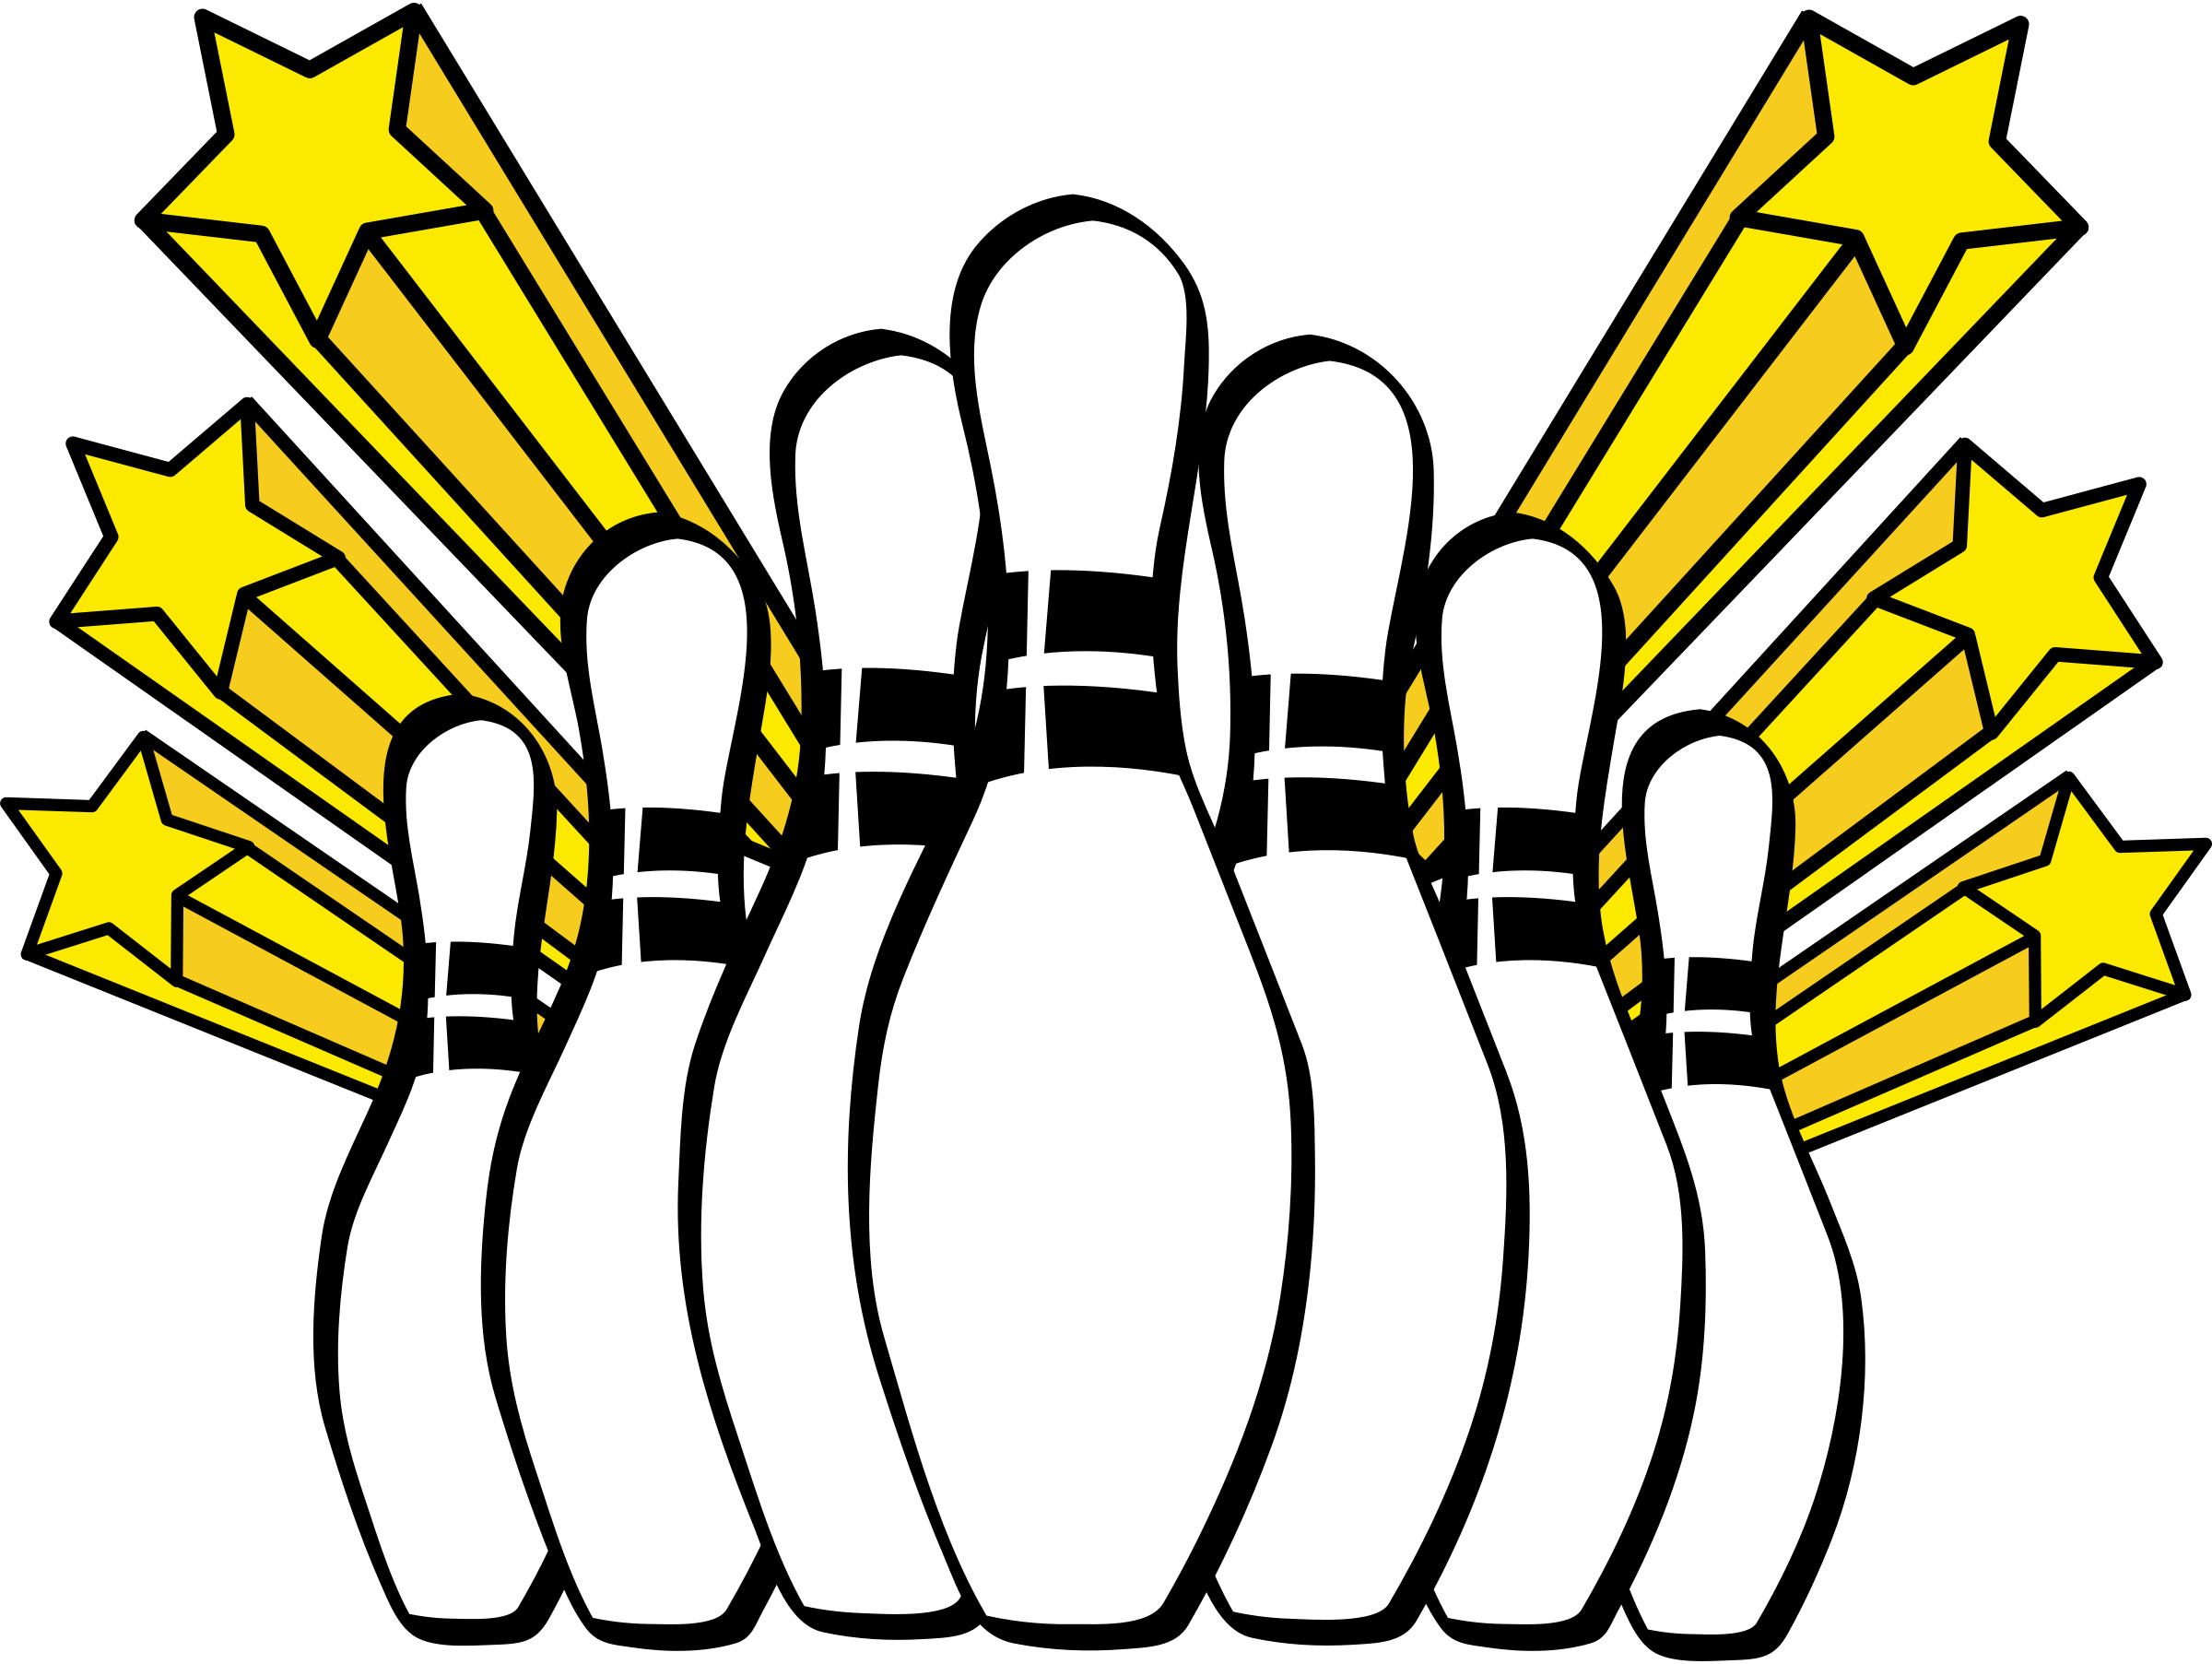 clip download Action clipart drawing. Bowling at getdrawings com.